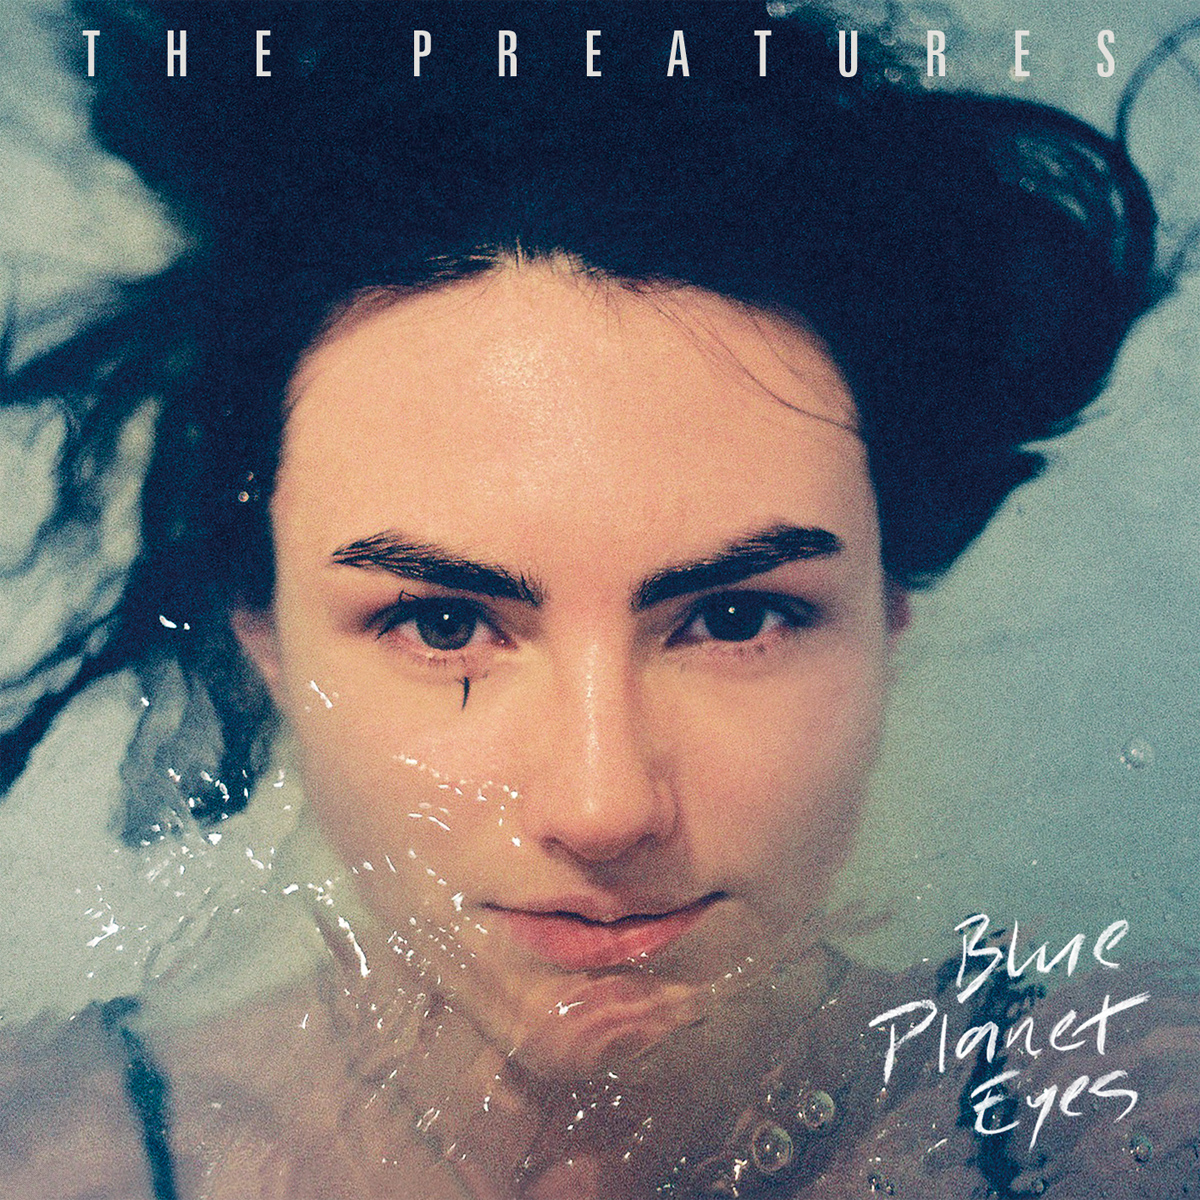 preatures_feature